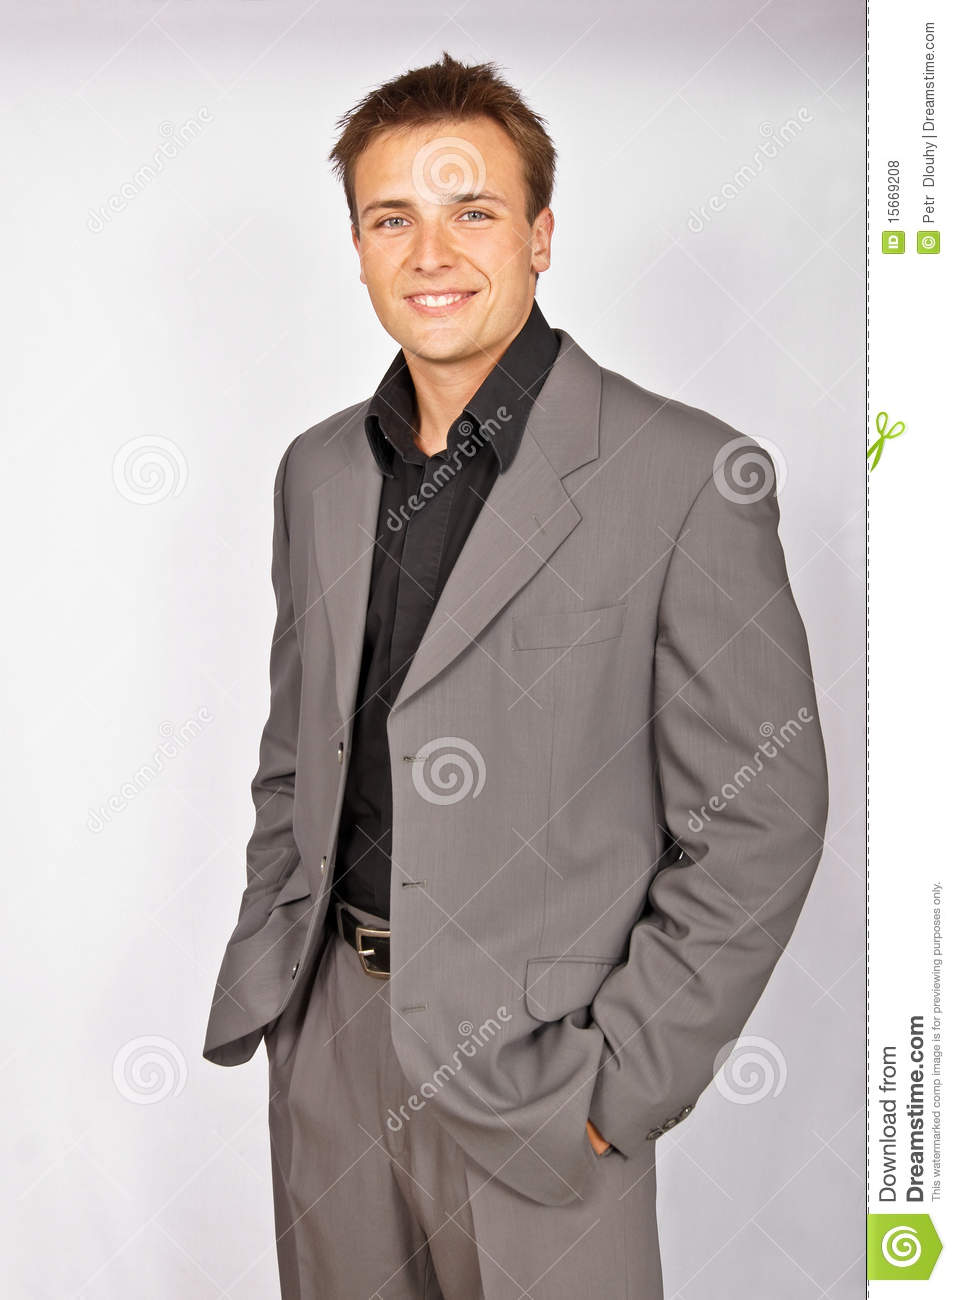 Attractive young man in suit